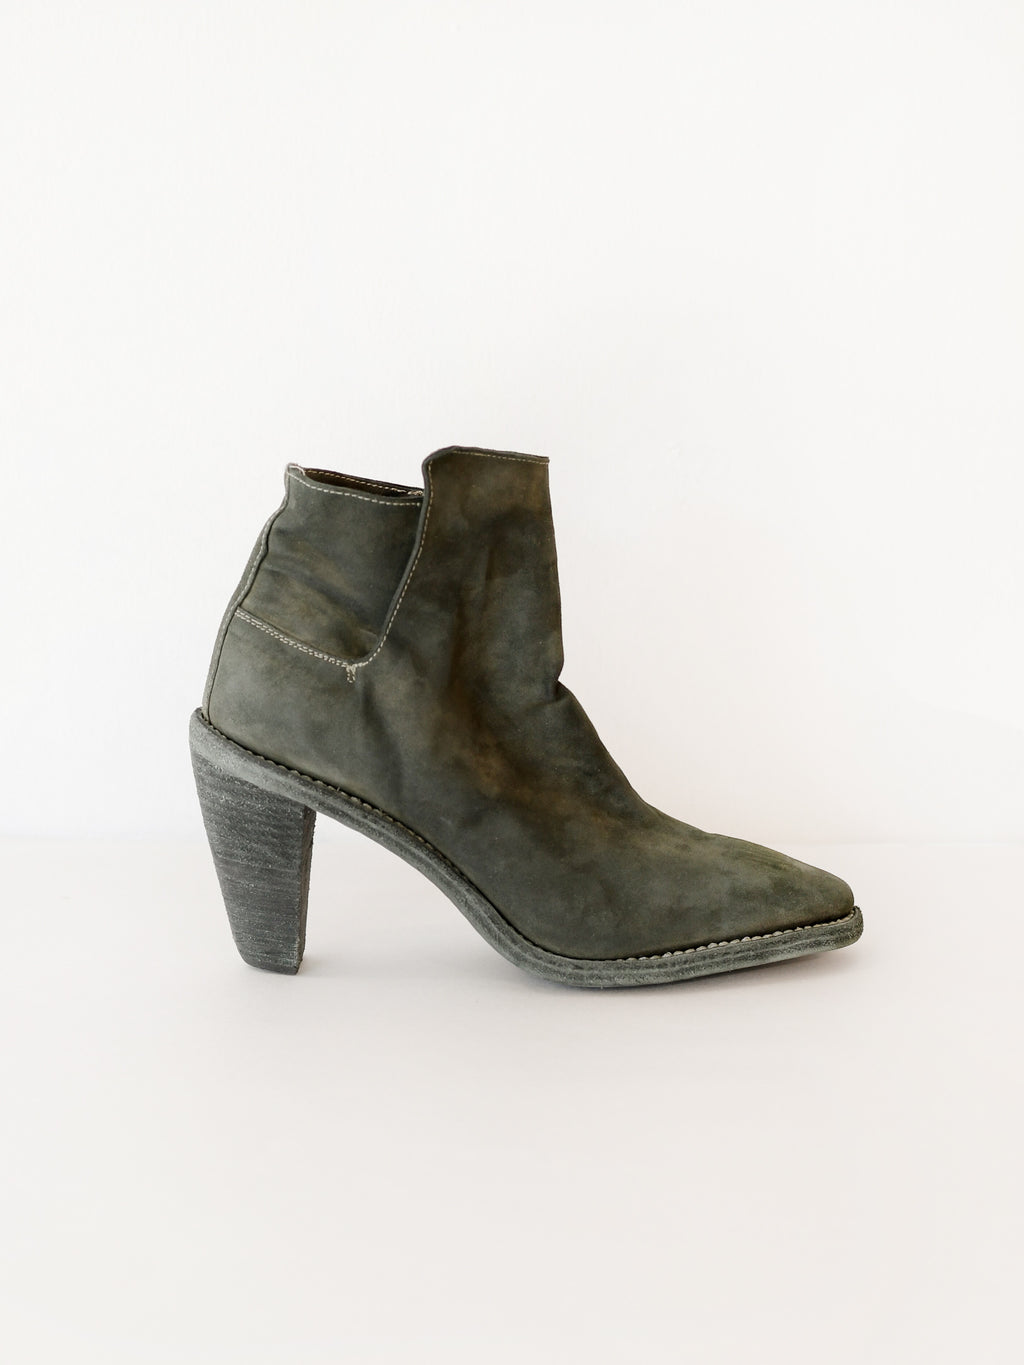 SLIP ON ANKLE BOOT